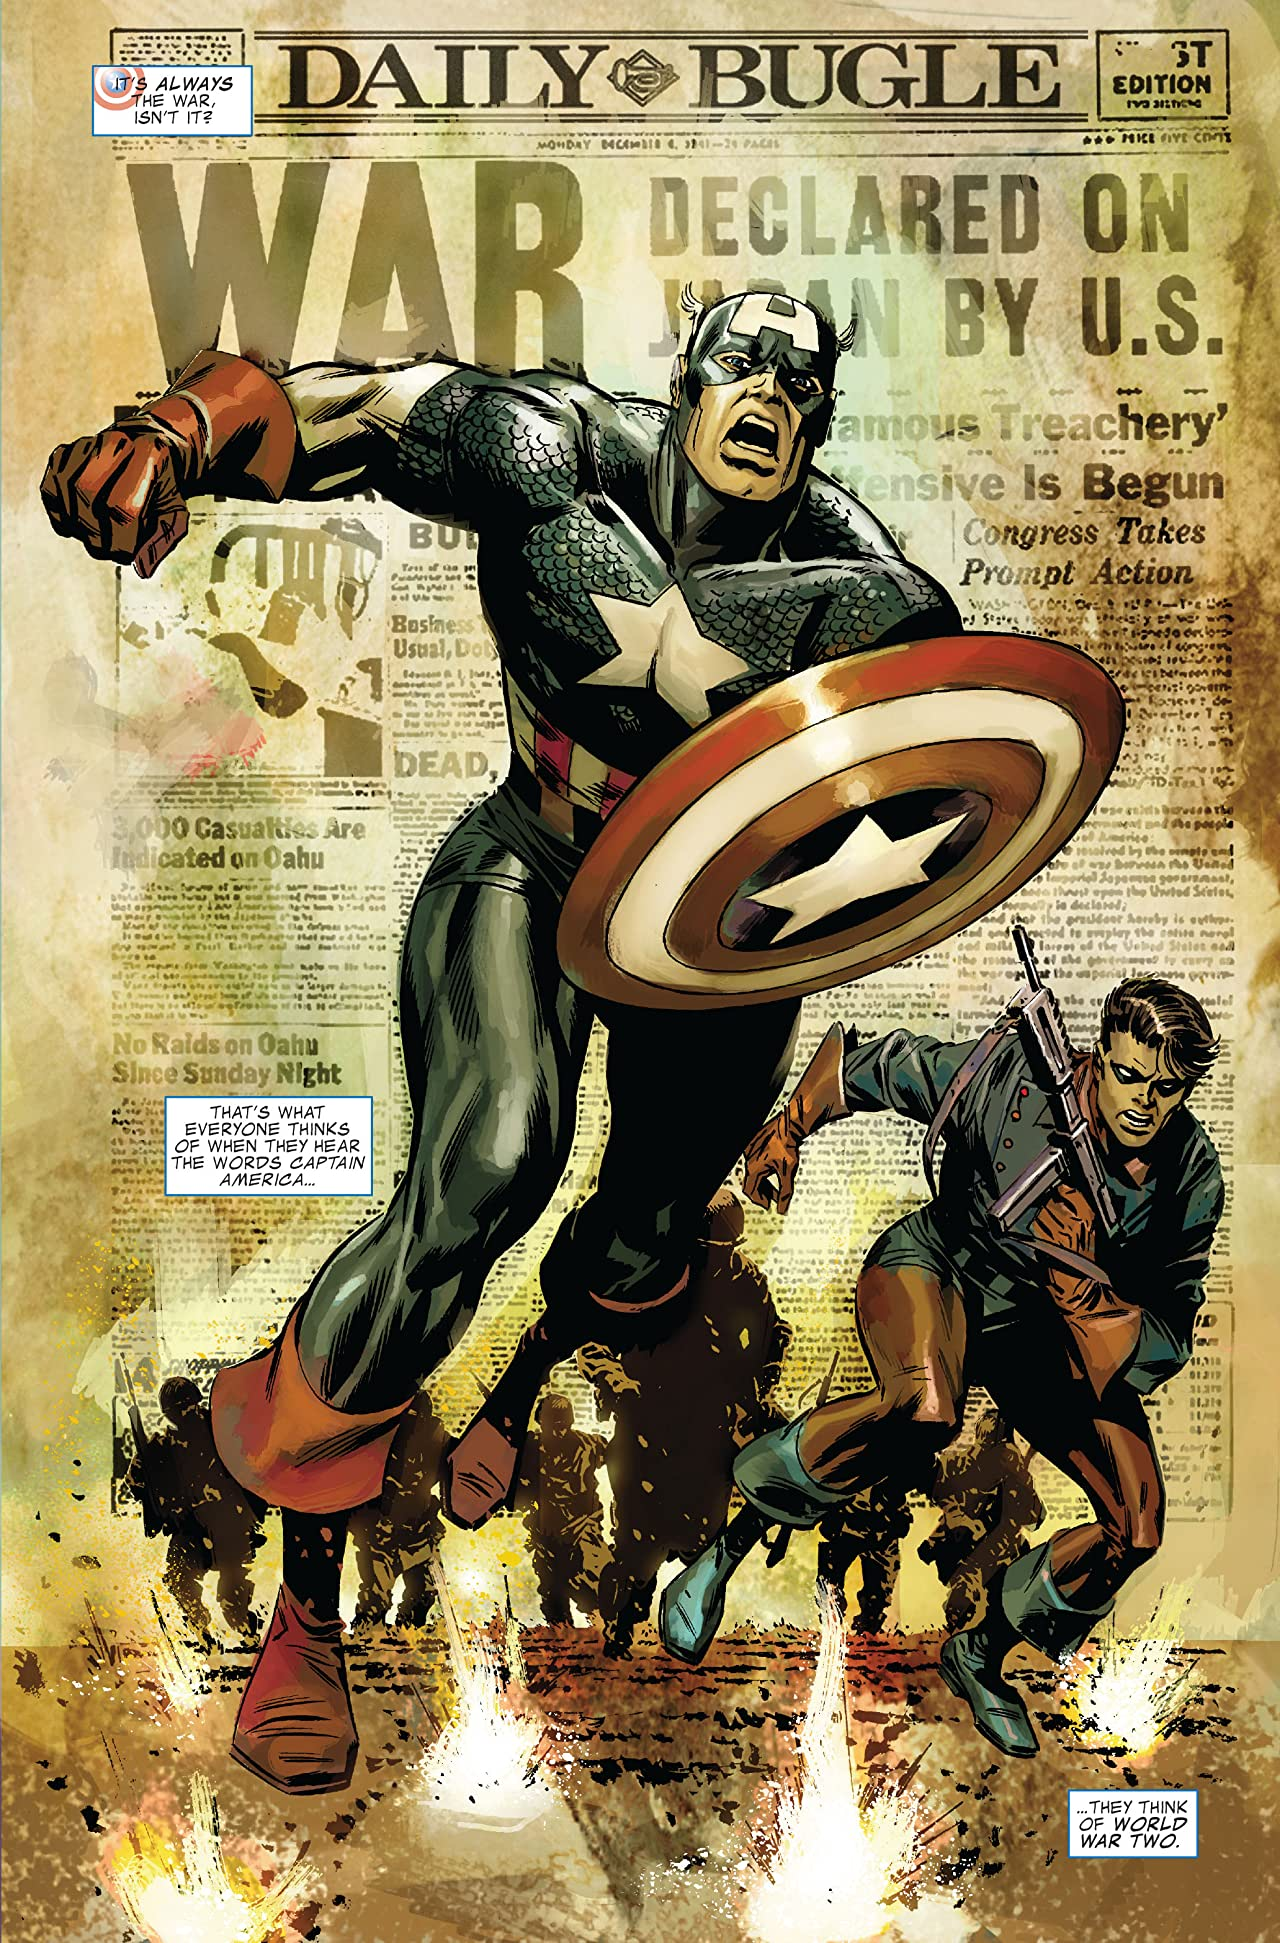 Captain America Reborn: Who Will Wield the Shield